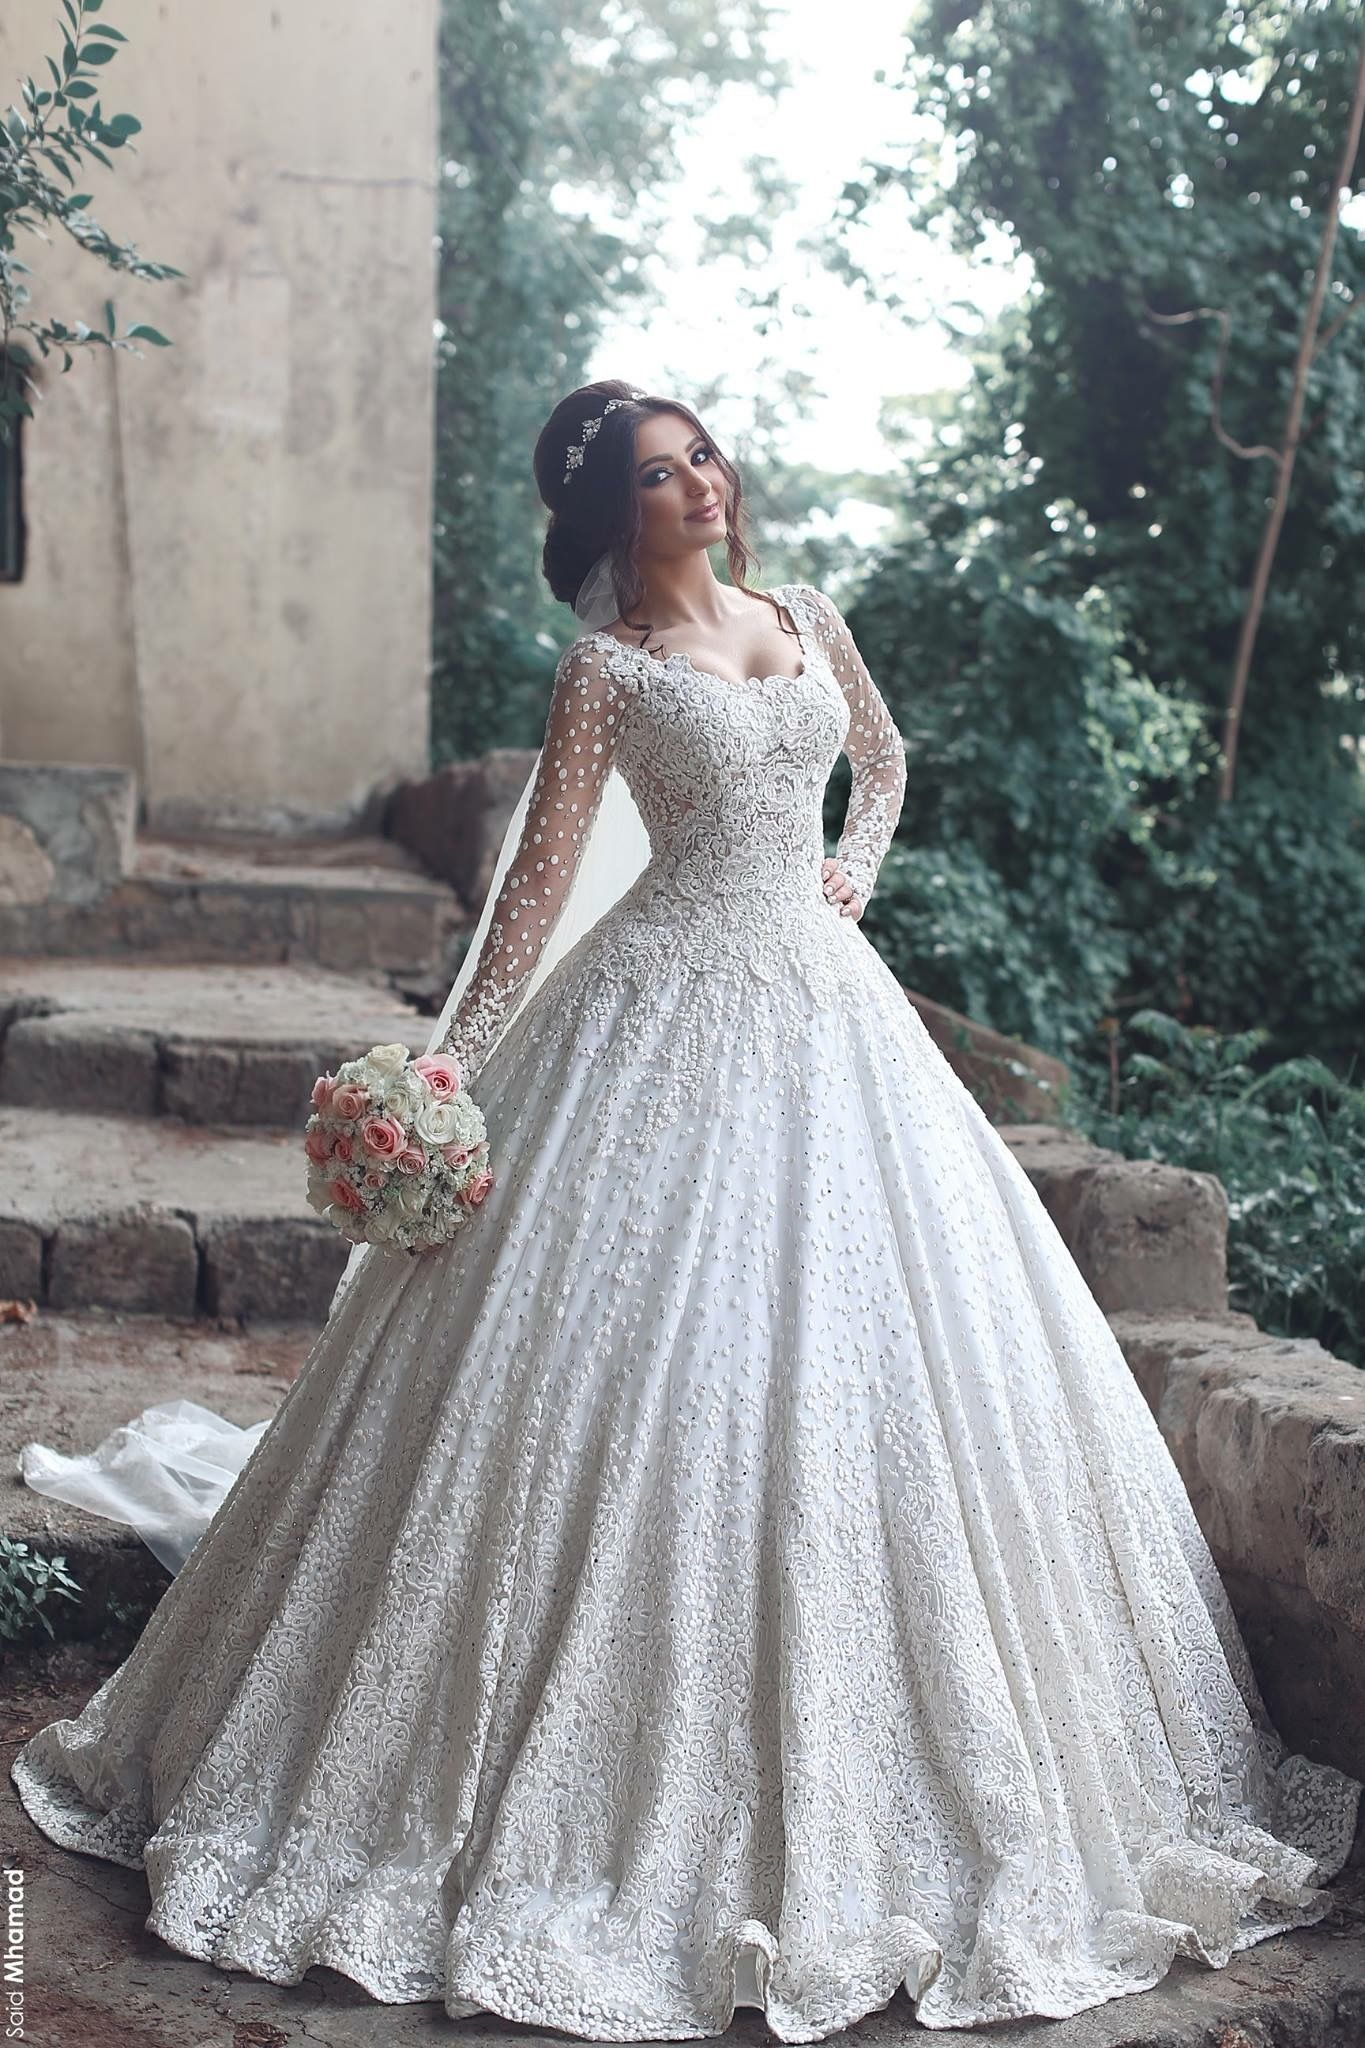 Beautiful wedding dress wedding dresses pinterest wedding